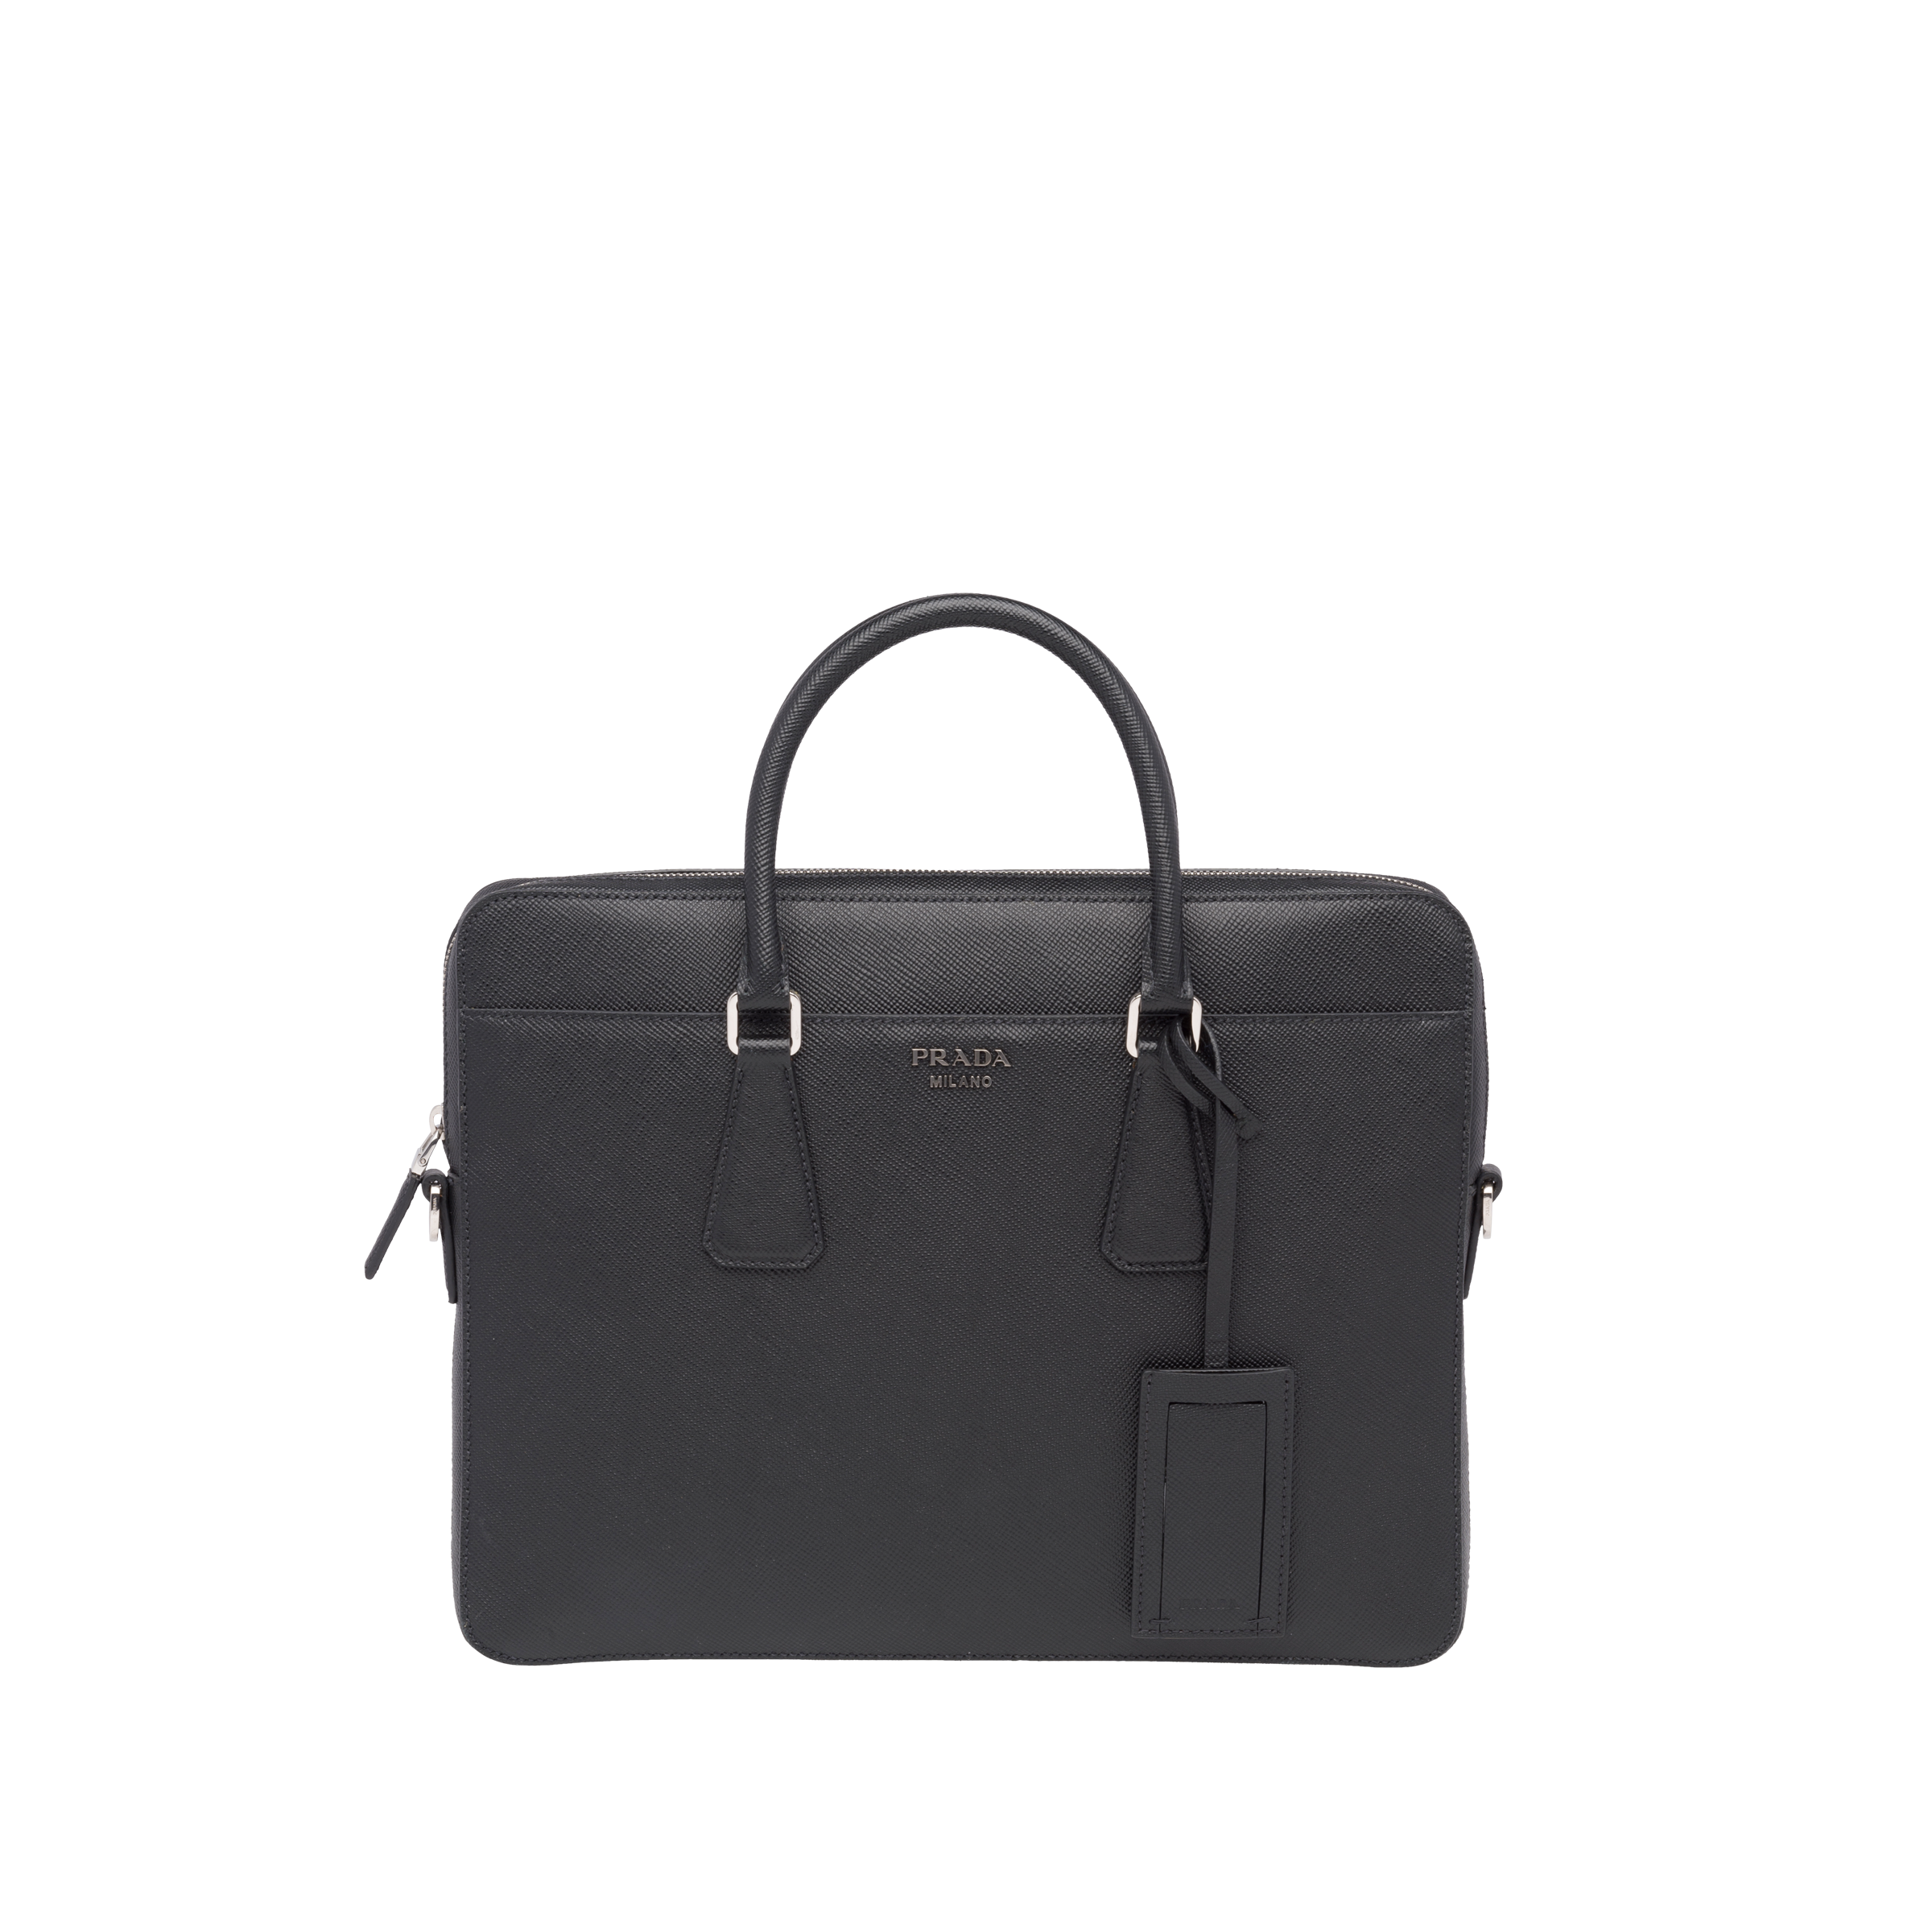 Character with briefcase png. Saffiano cuir leather